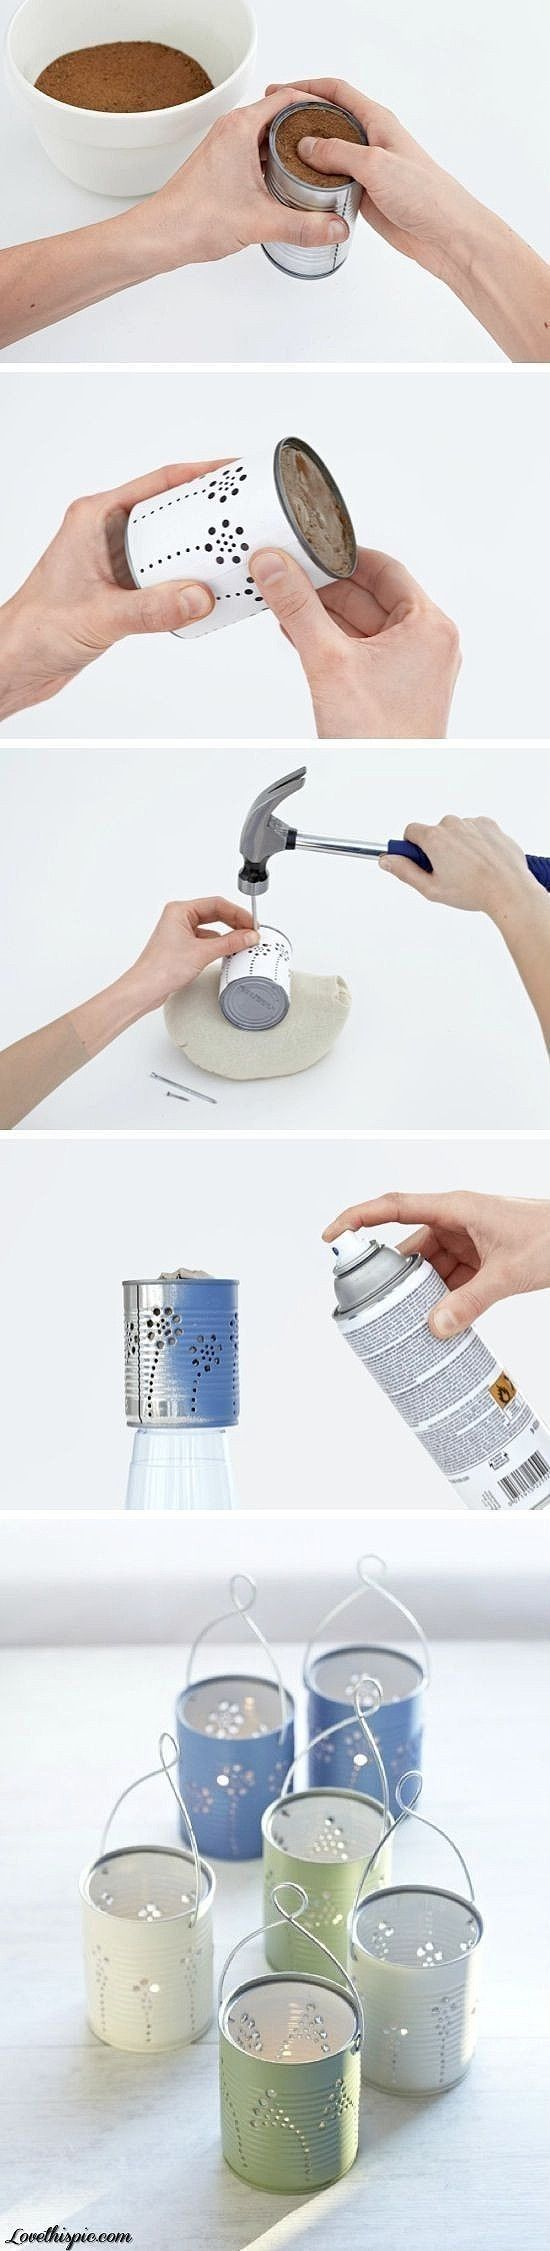 Making lights for a summer garden soiree from tin cans.